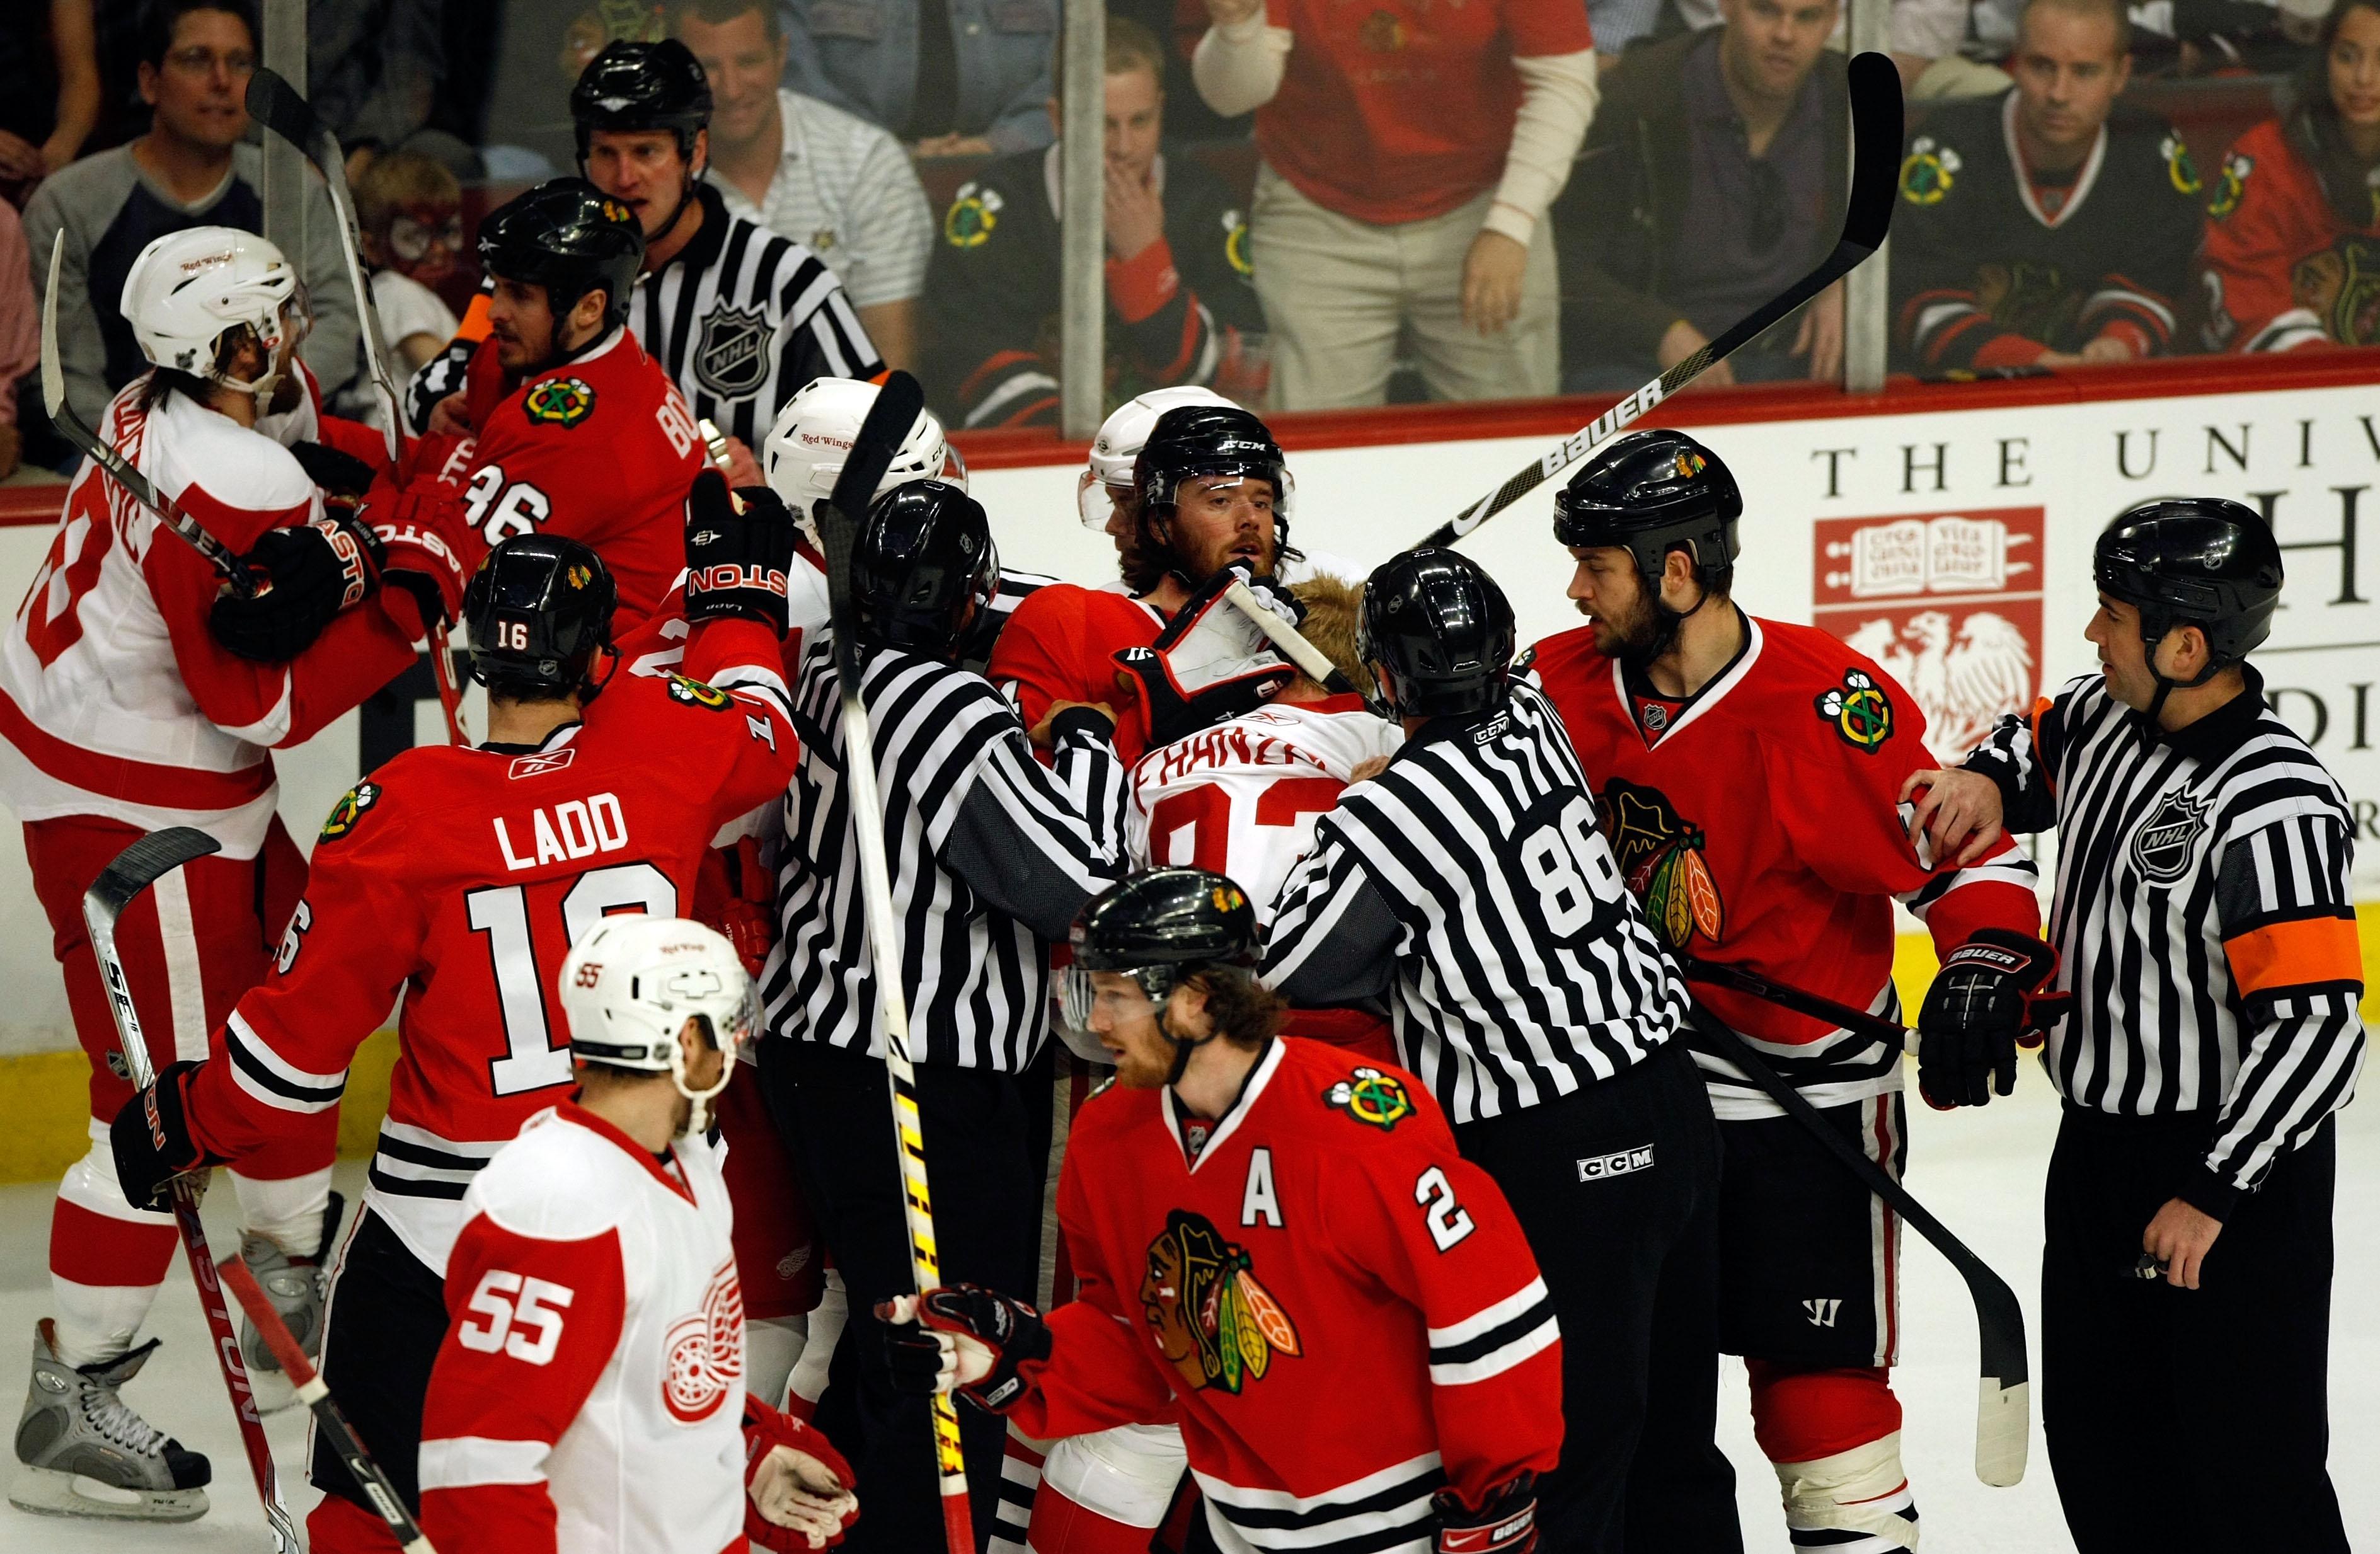 CHICAGO - MAY 24:  Officals attempt to seperate players as Martin Havlat #24 (C) of the Chicago Blackhawks fights with Johan Franzen #93 of the Detroit Red Wings during Game Four of the Western Conference Championship Round of the 2009 Stanley Cup Playoff